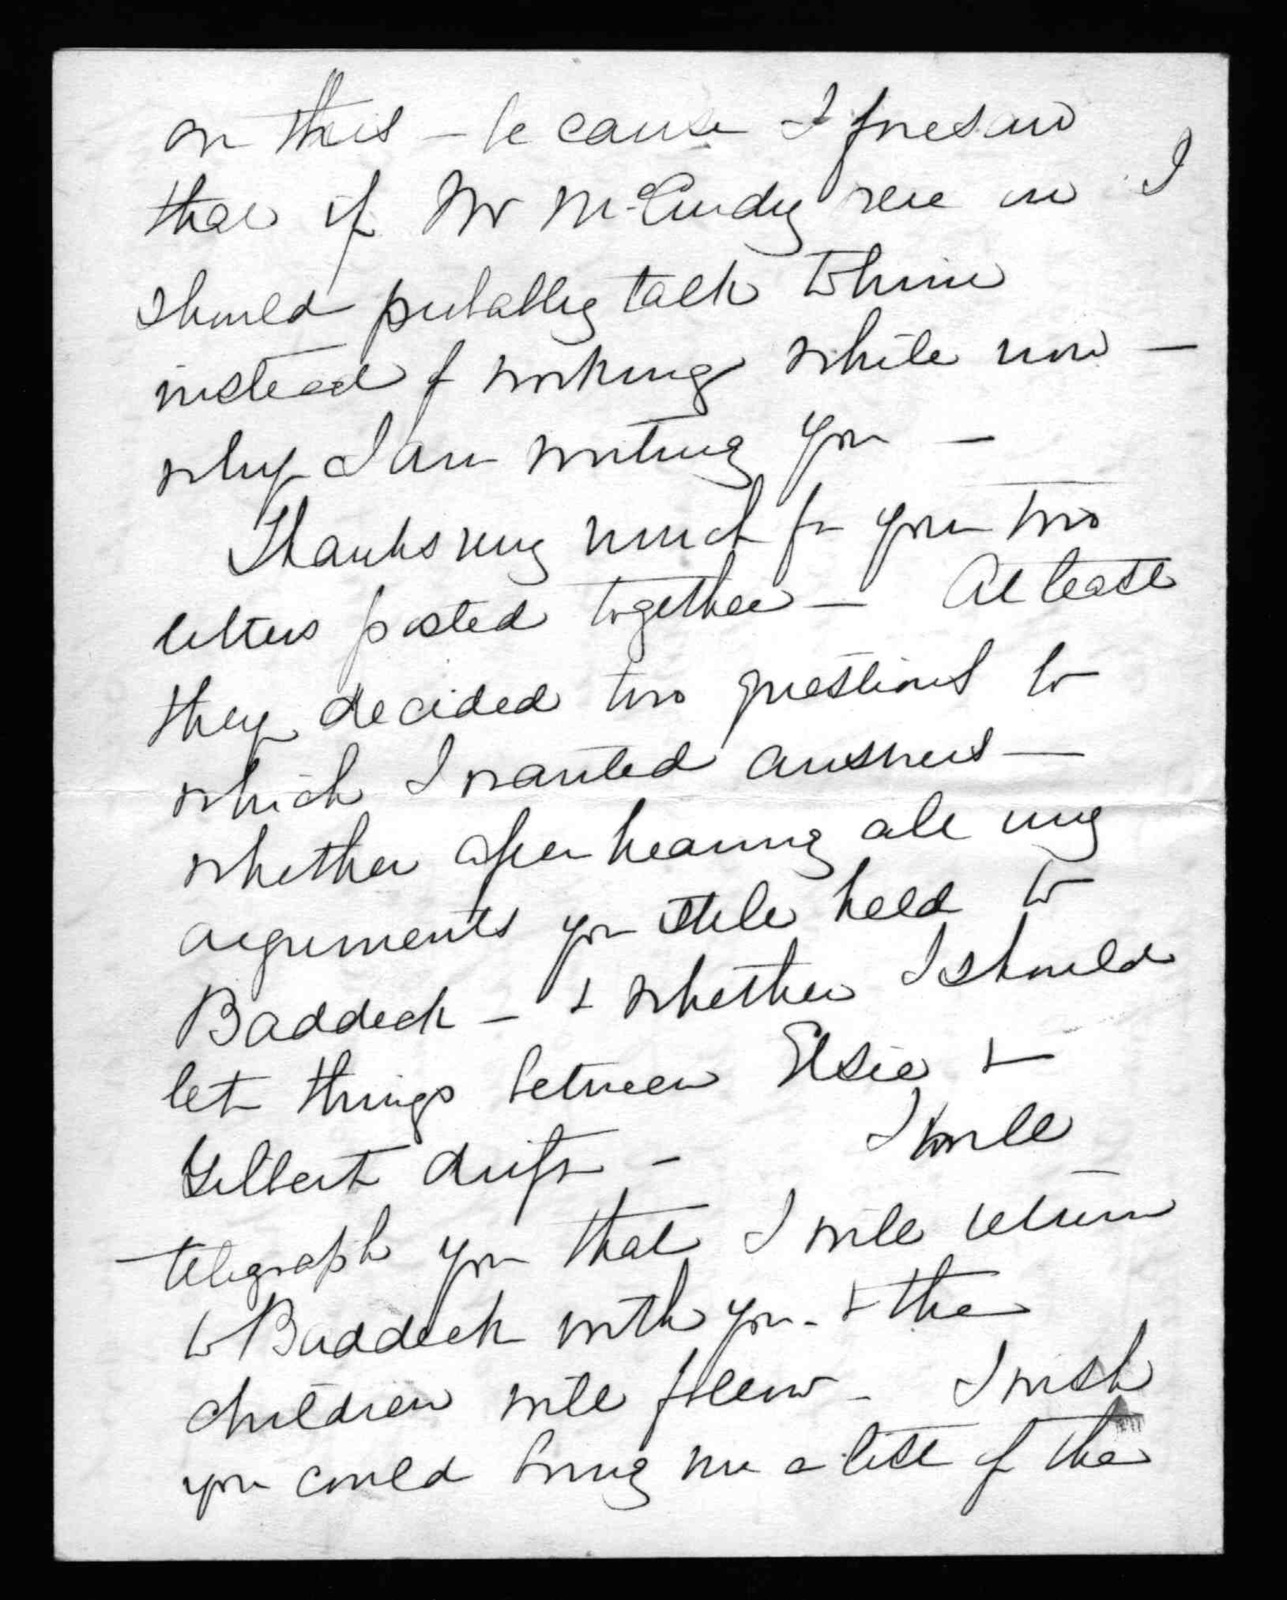 Letter from Mabel Hubbard Bell to Alexander Graham Bell, June 11, 1899